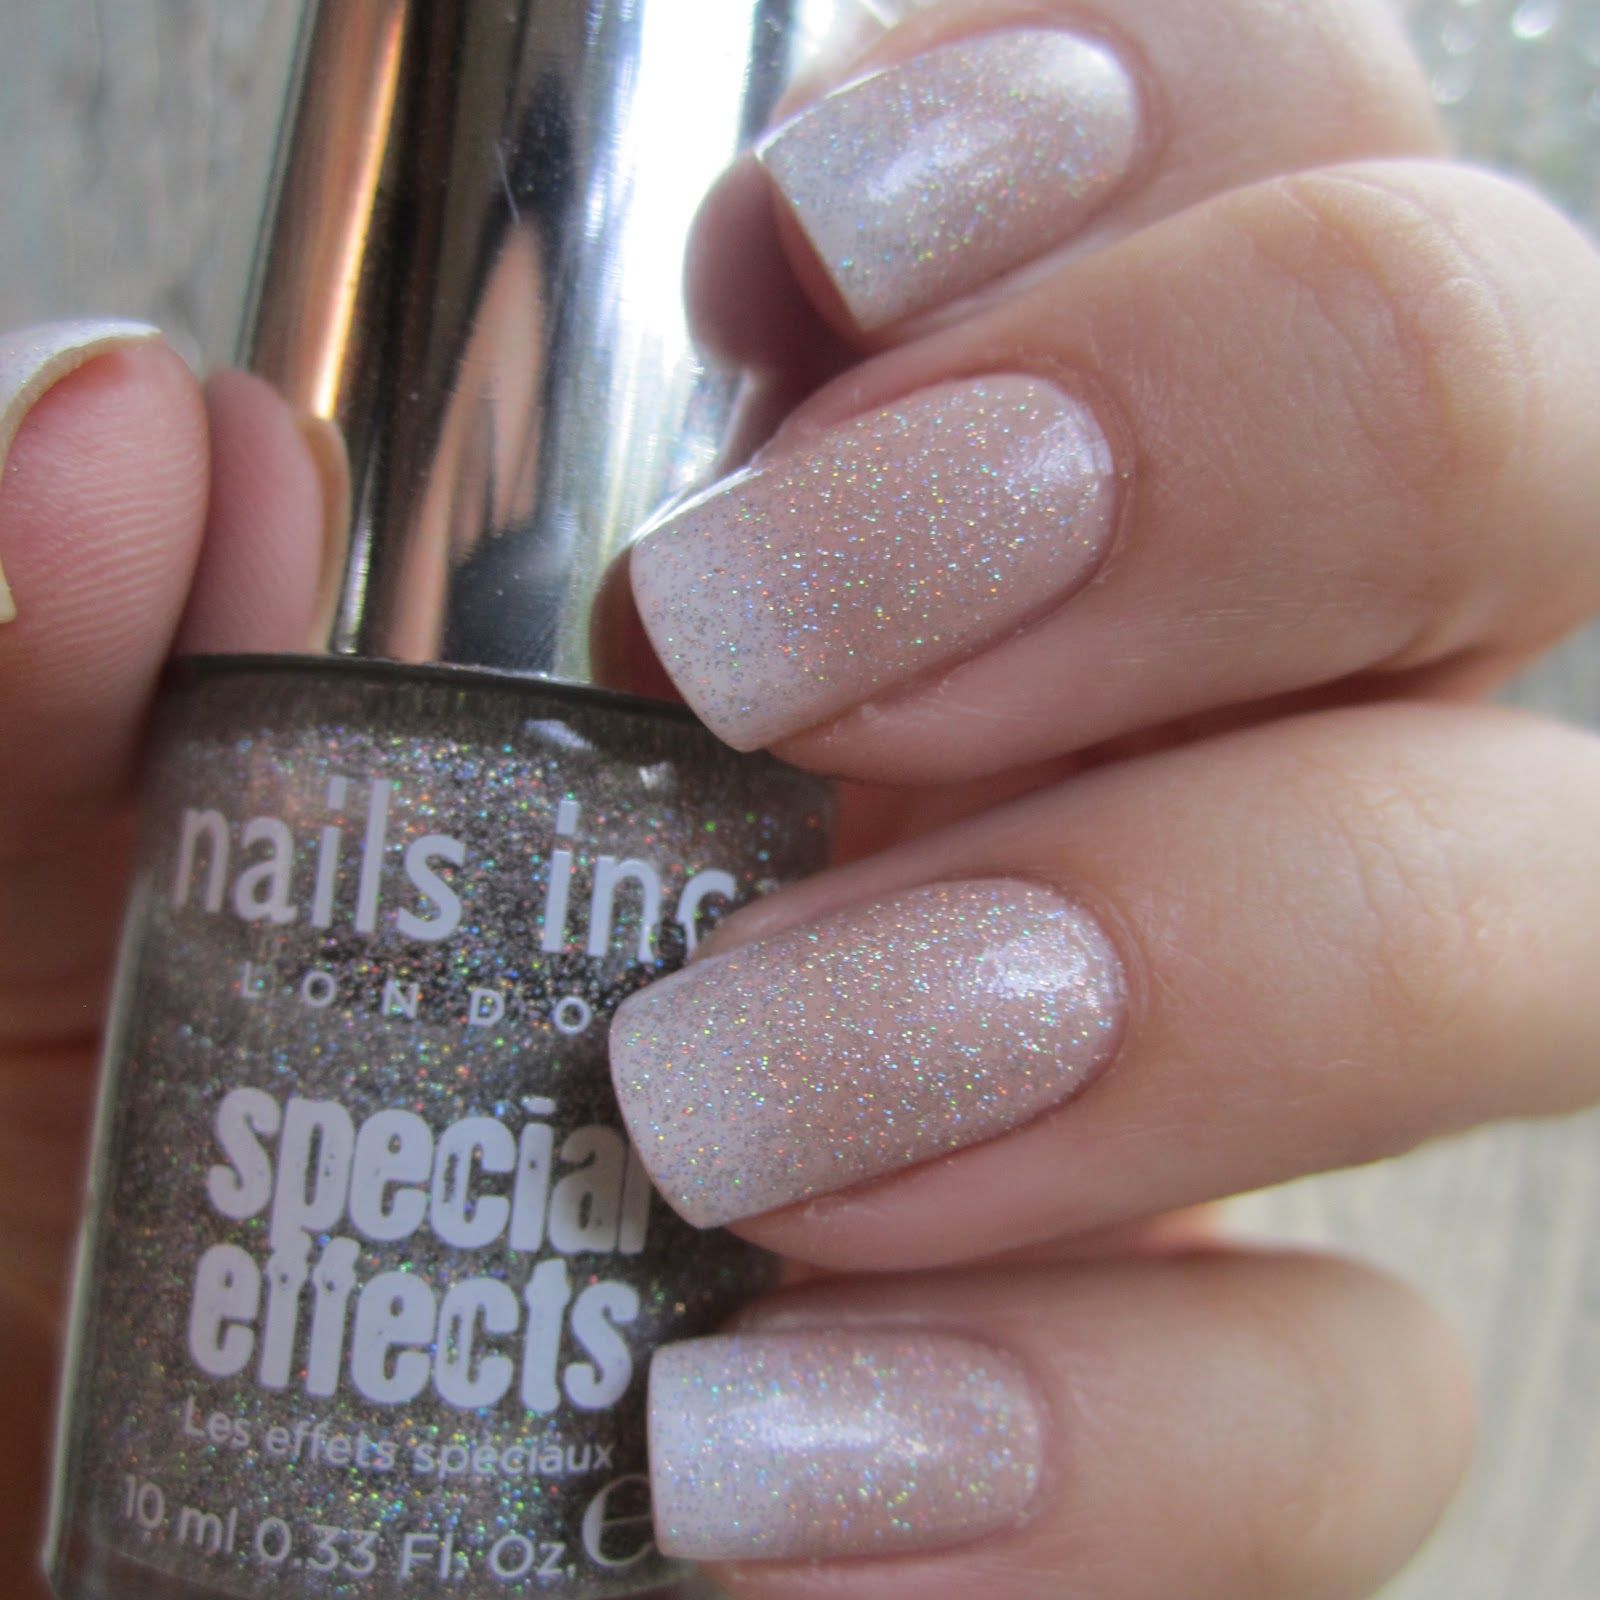 french manicure gradient glitter top coat kate 39 s mani nails nails nails pinterest. Black Bedroom Furniture Sets. Home Design Ideas